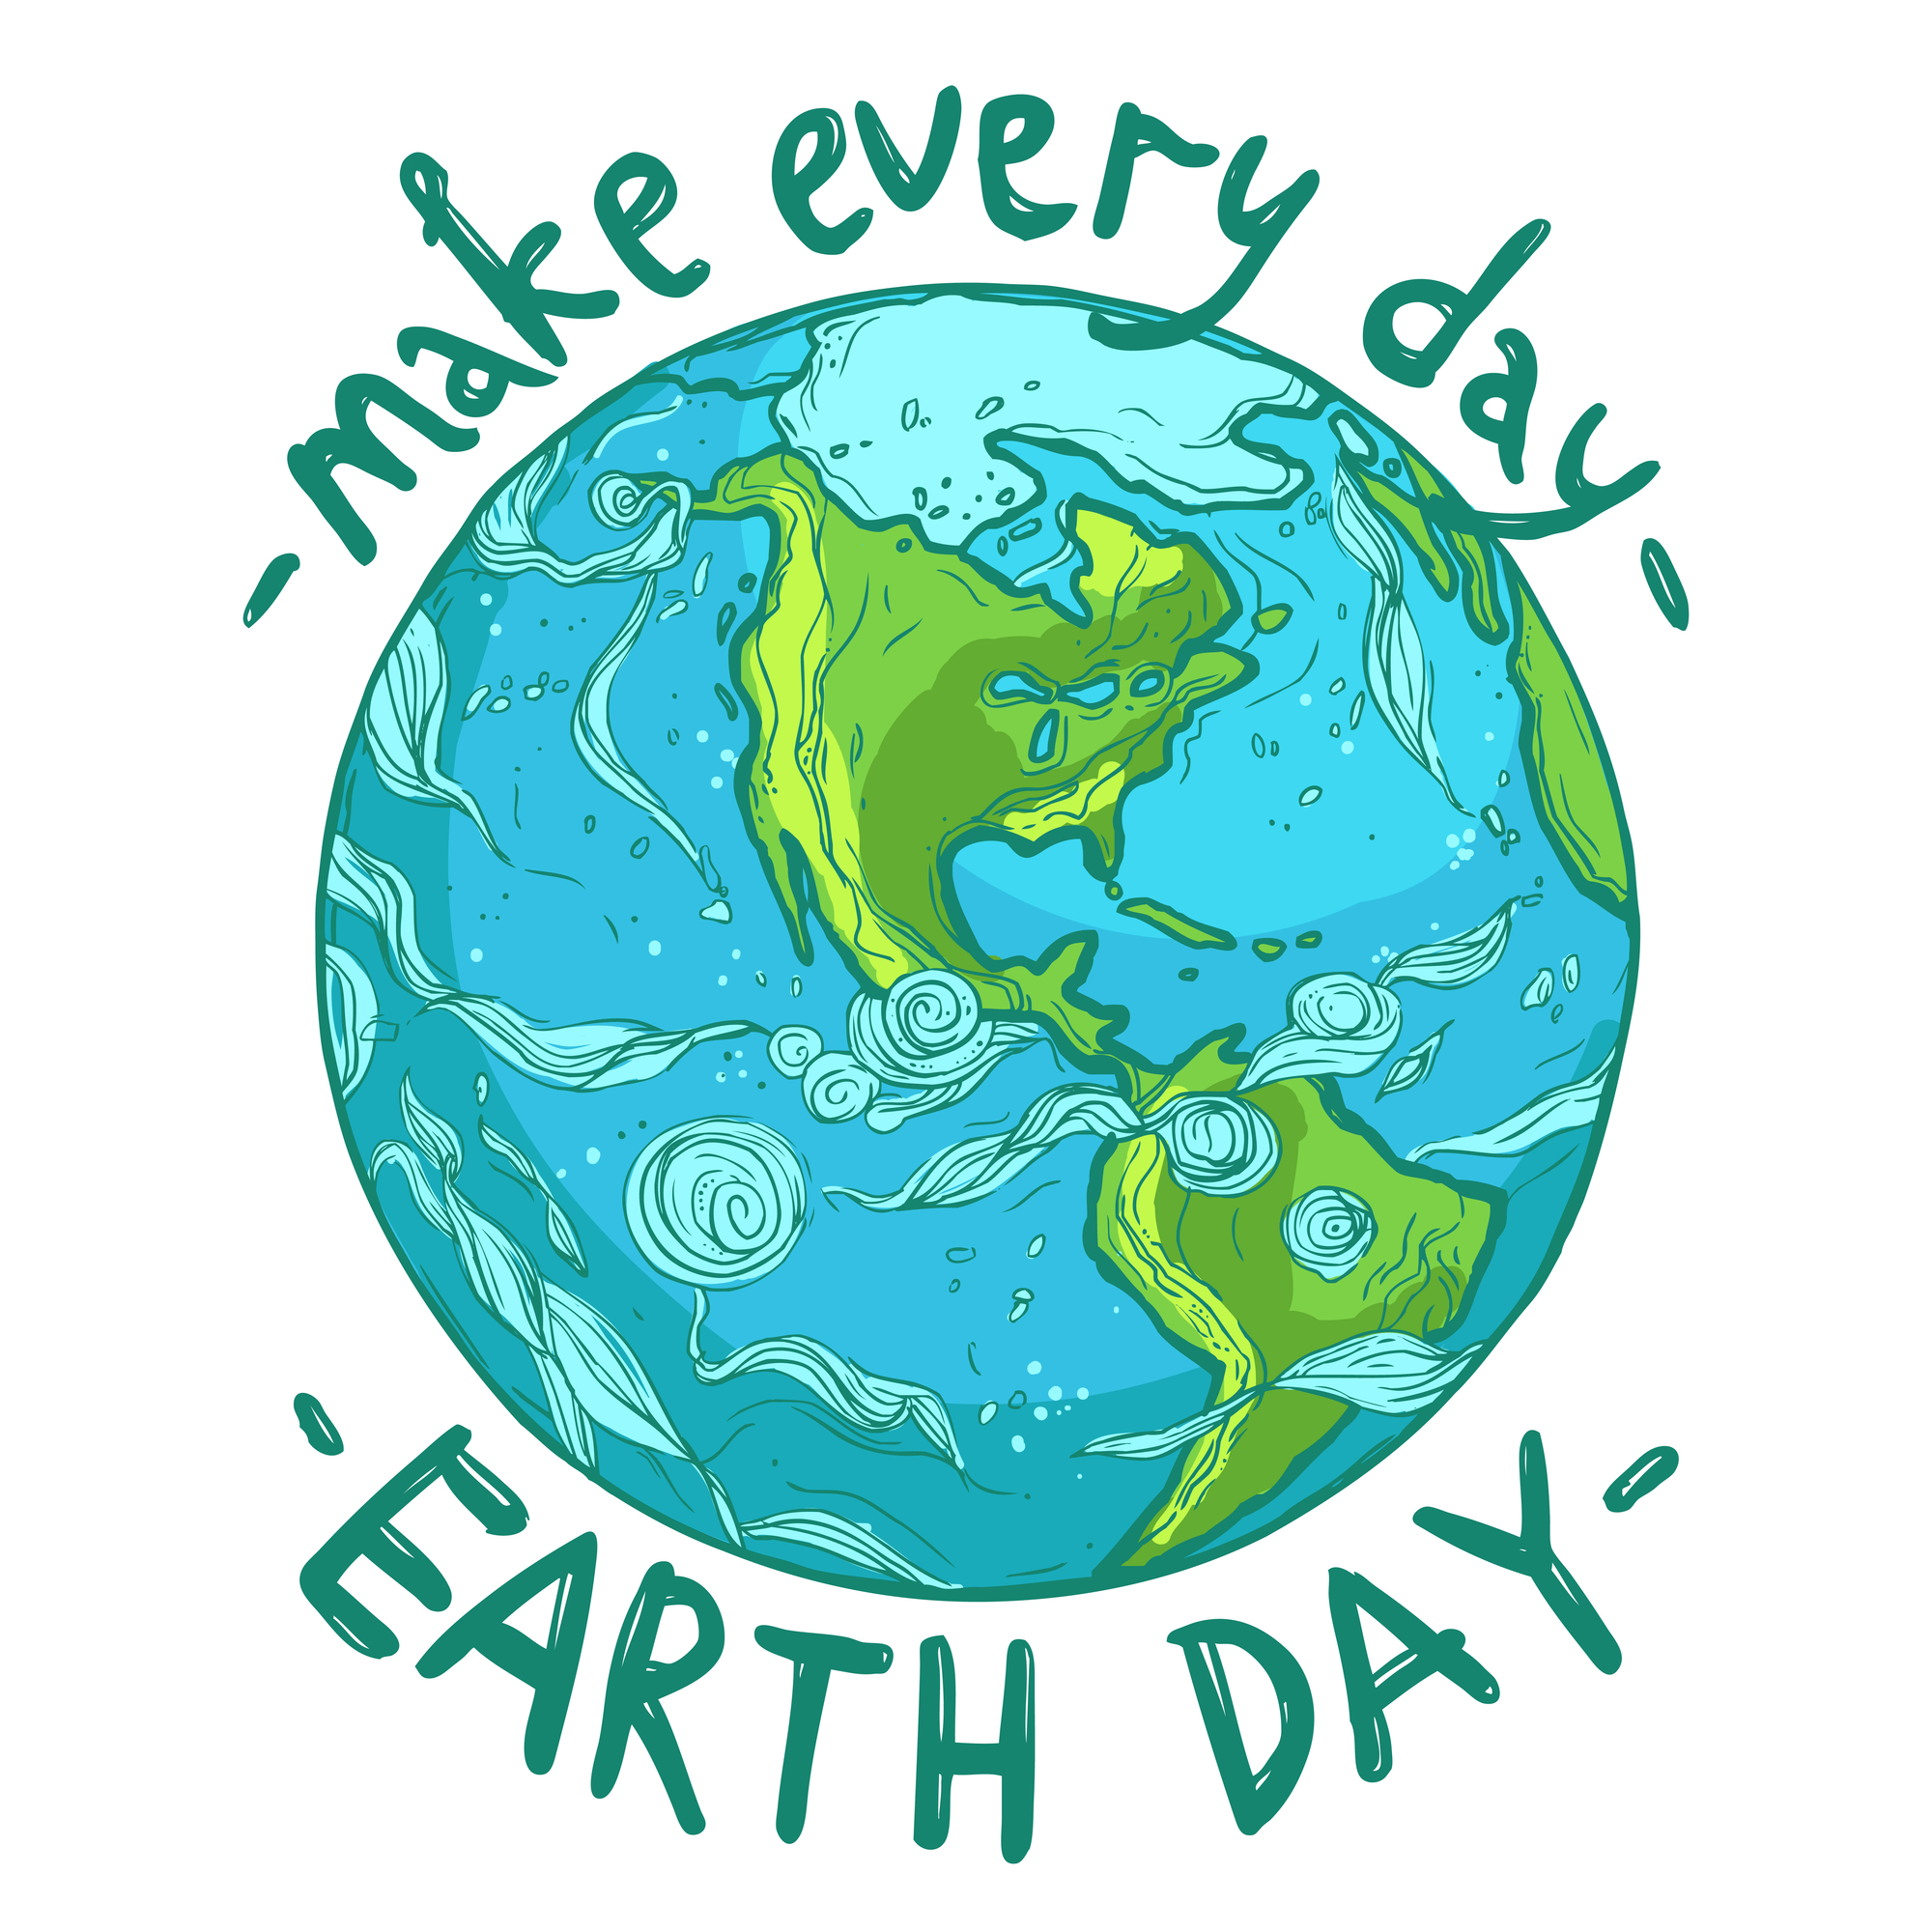 Happy Earth Day 2018!